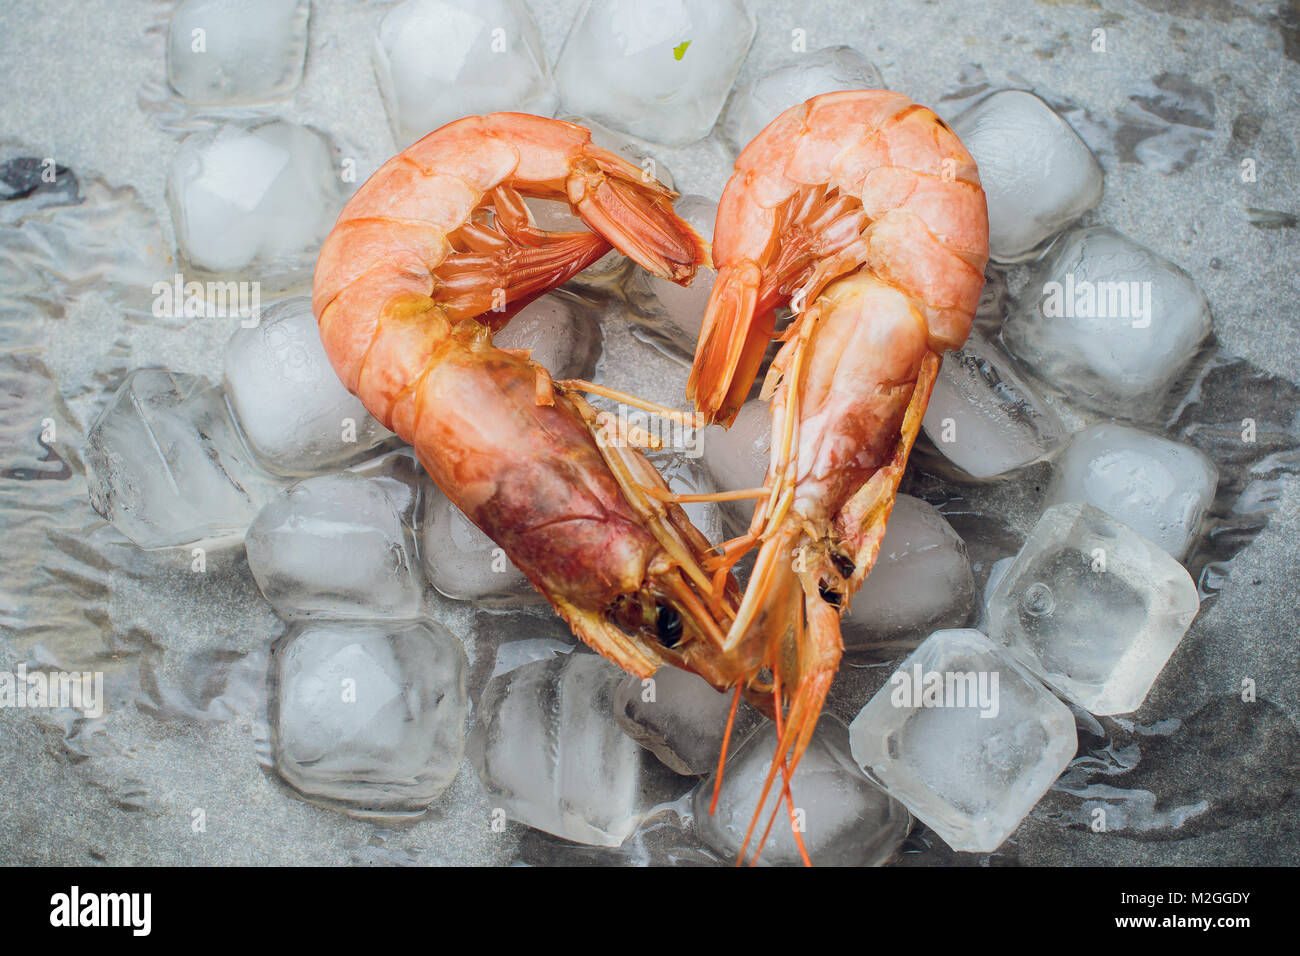 Argentine Raw Shrimp Seafood Food Red Ice Stock Photo 173697159 Alamy